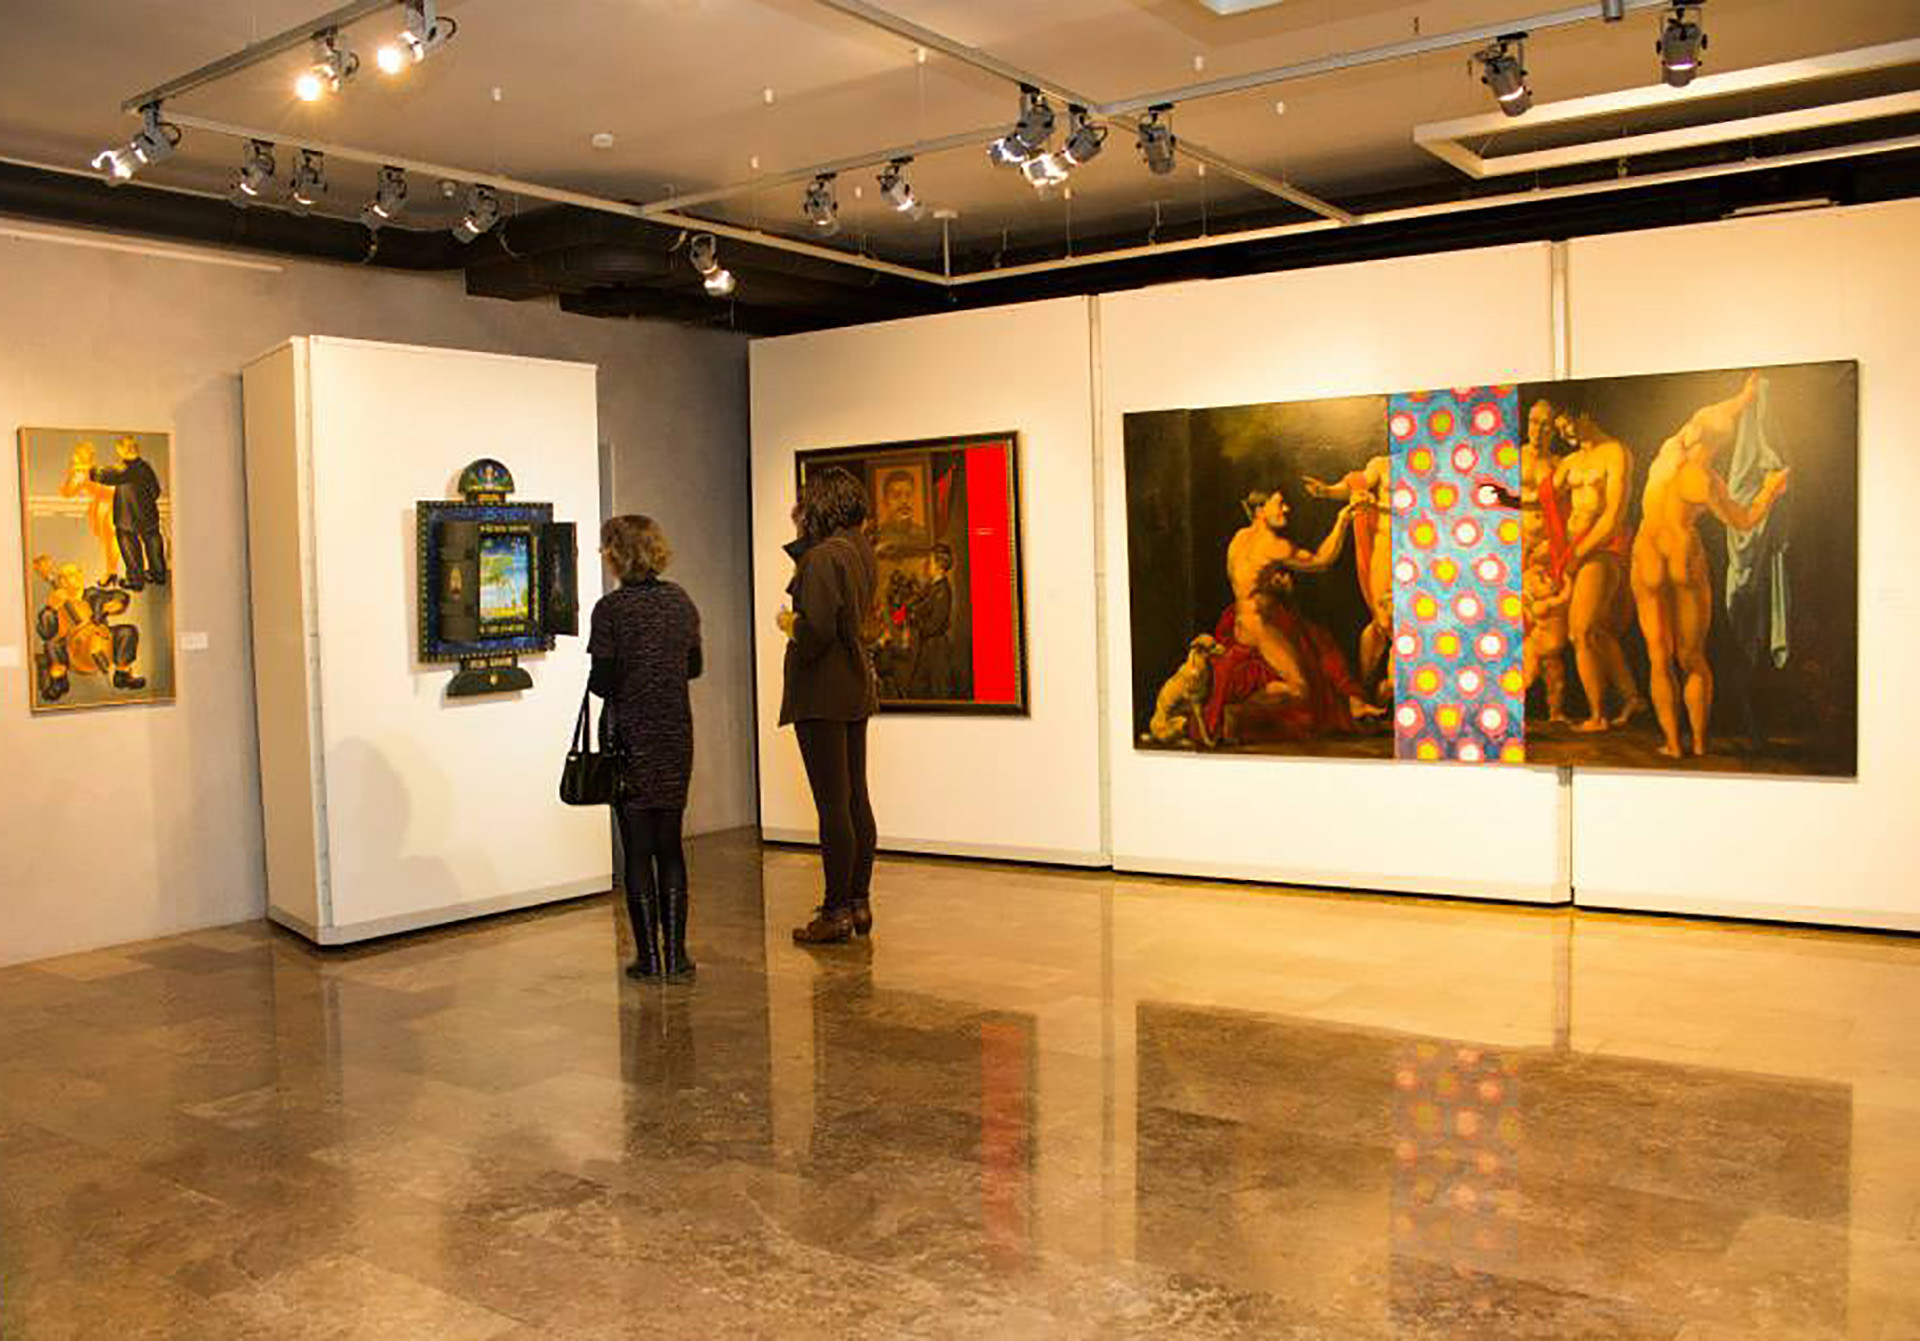 Impressionism Museum in Moscow: address, permanent and temporary exhibitions